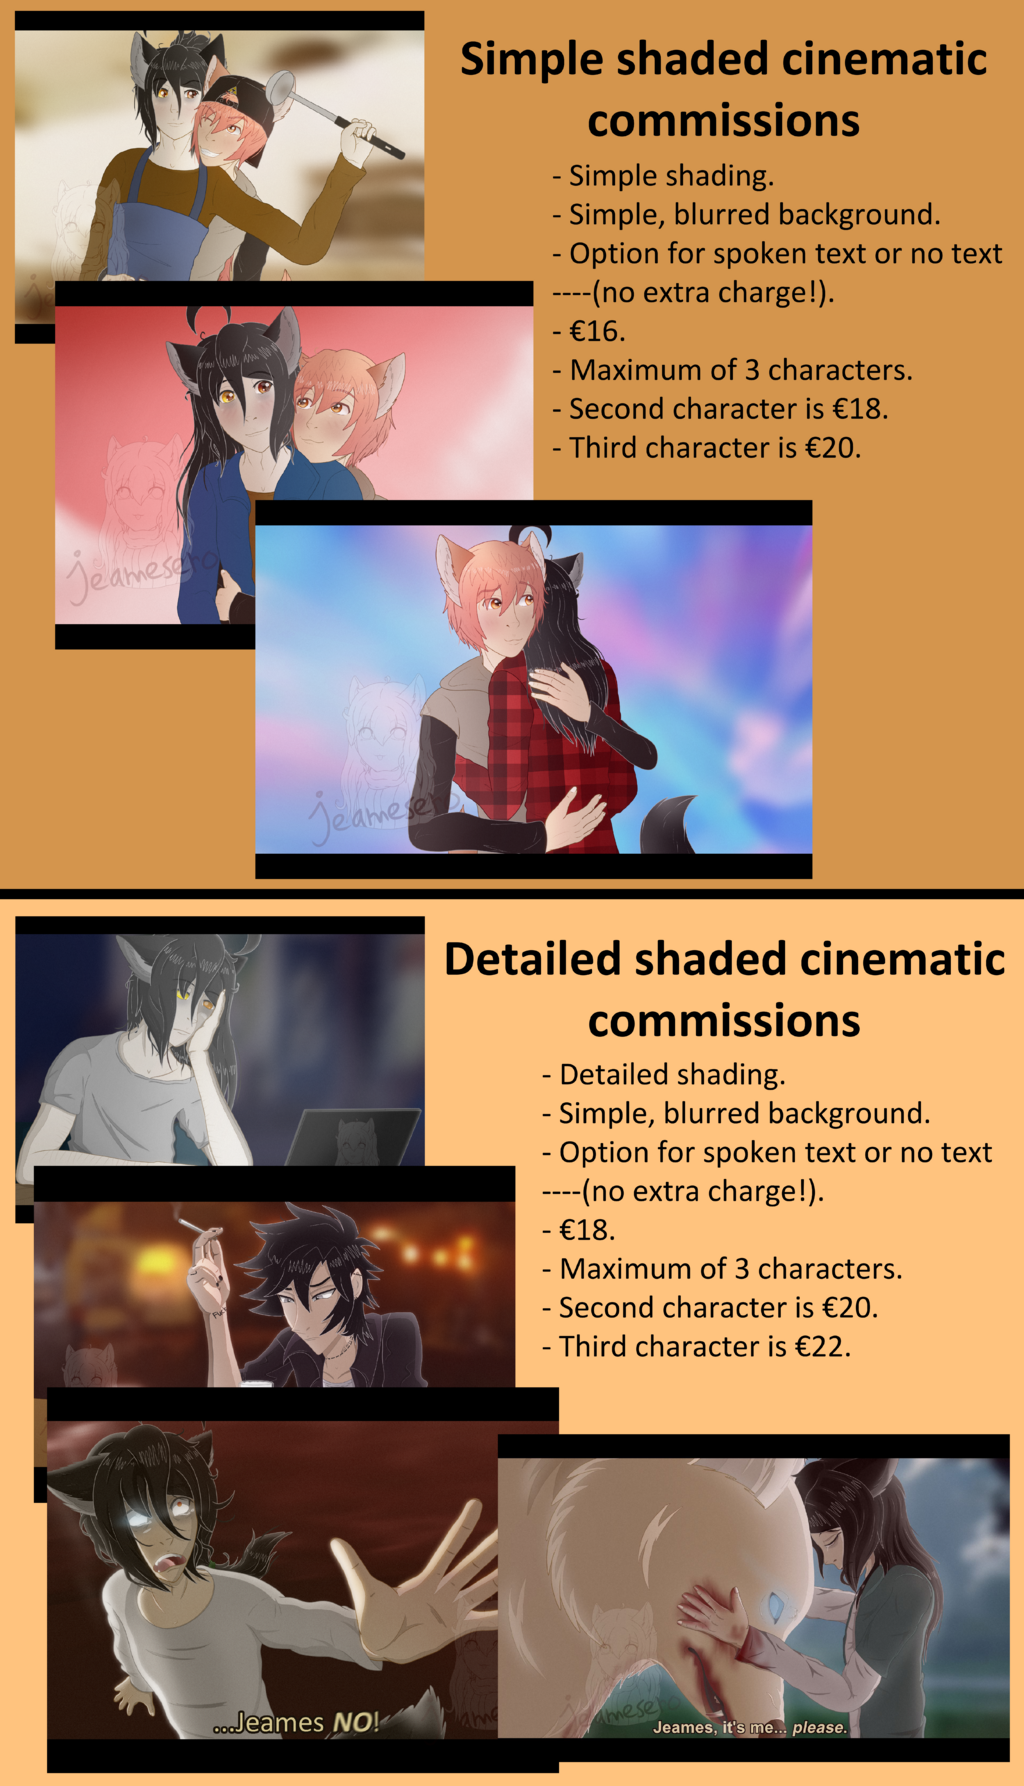 Cinematic scenes commission sheet 2020